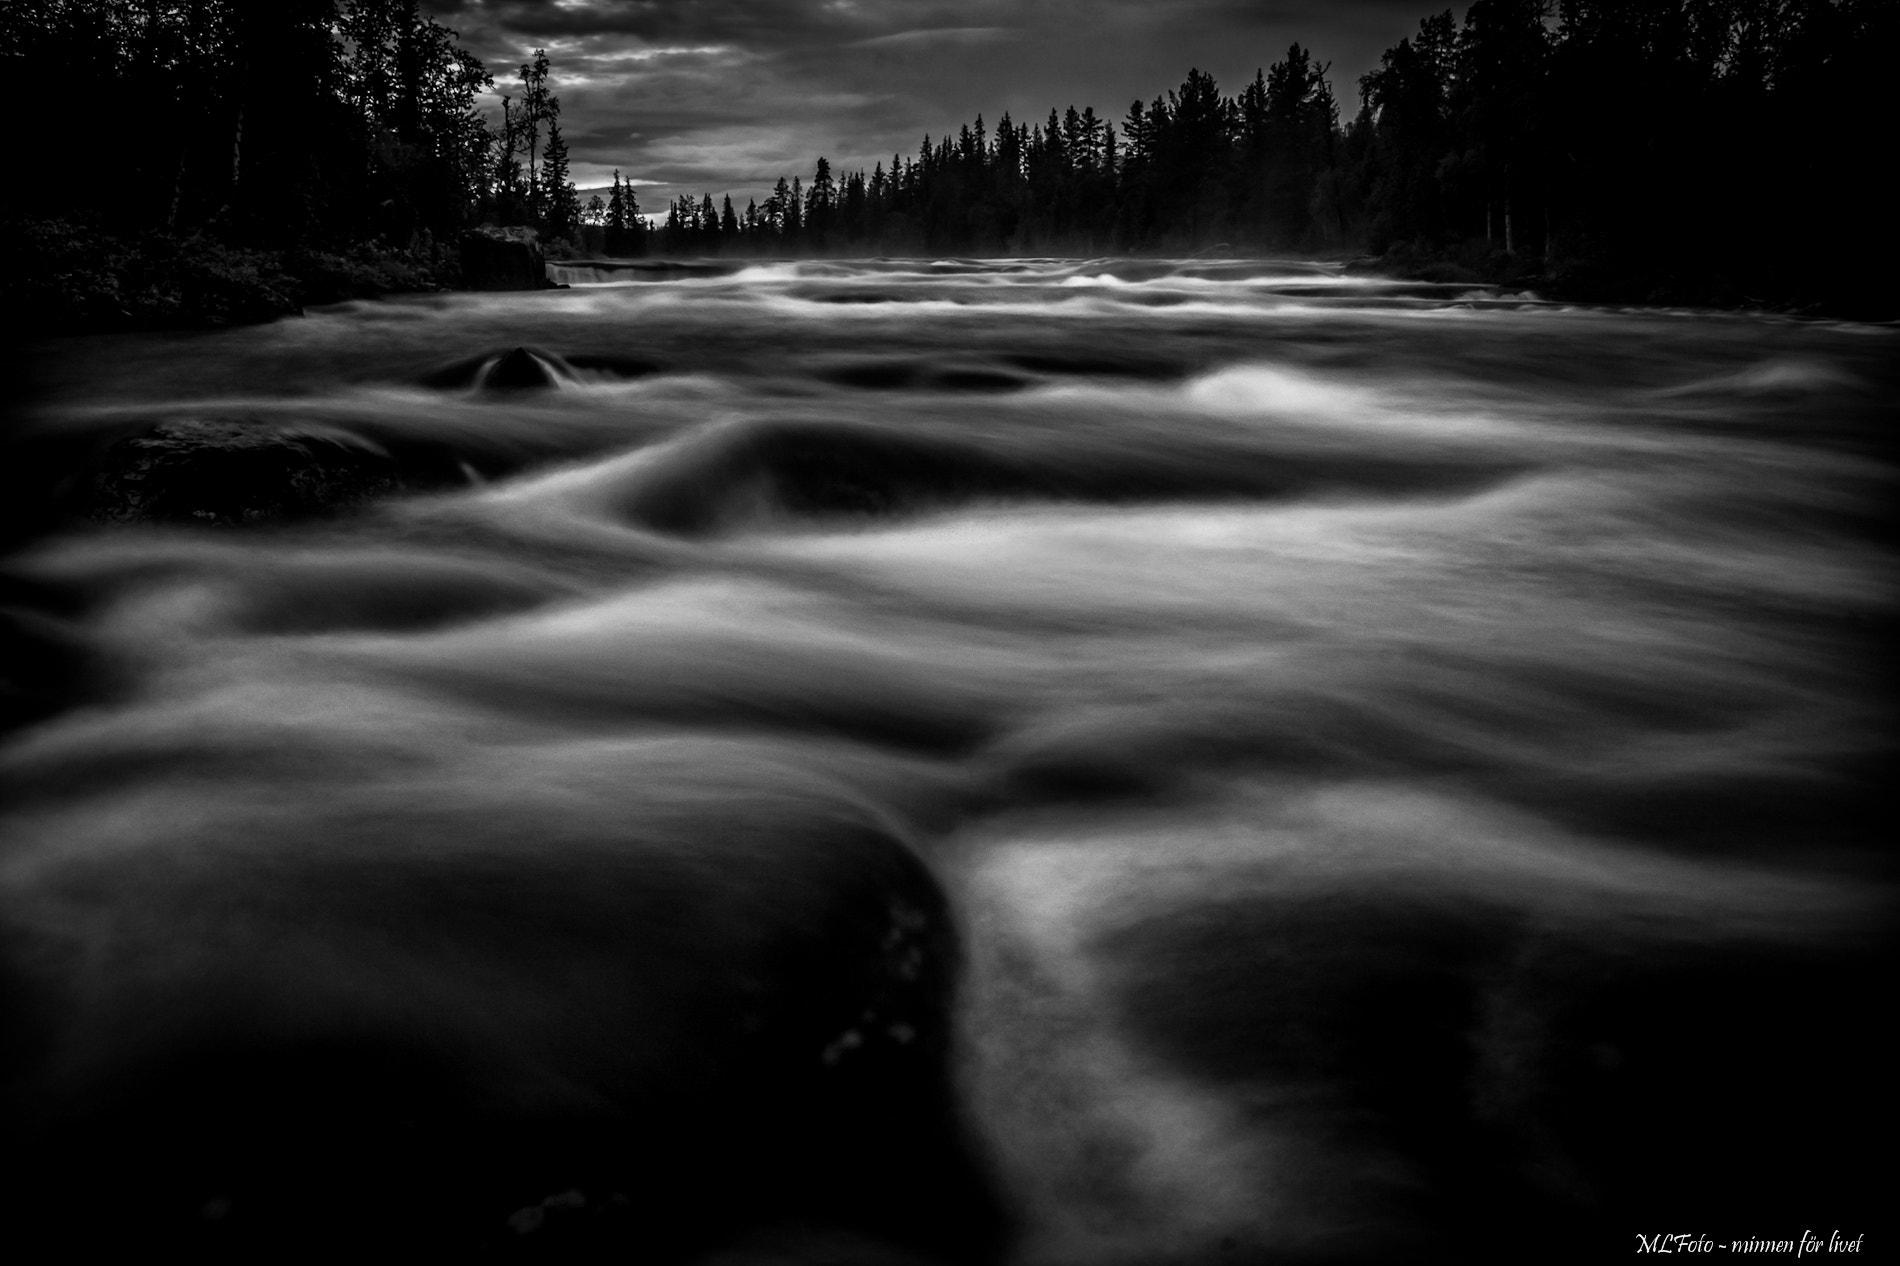 Photograph The River by Mikael Långström on 500px